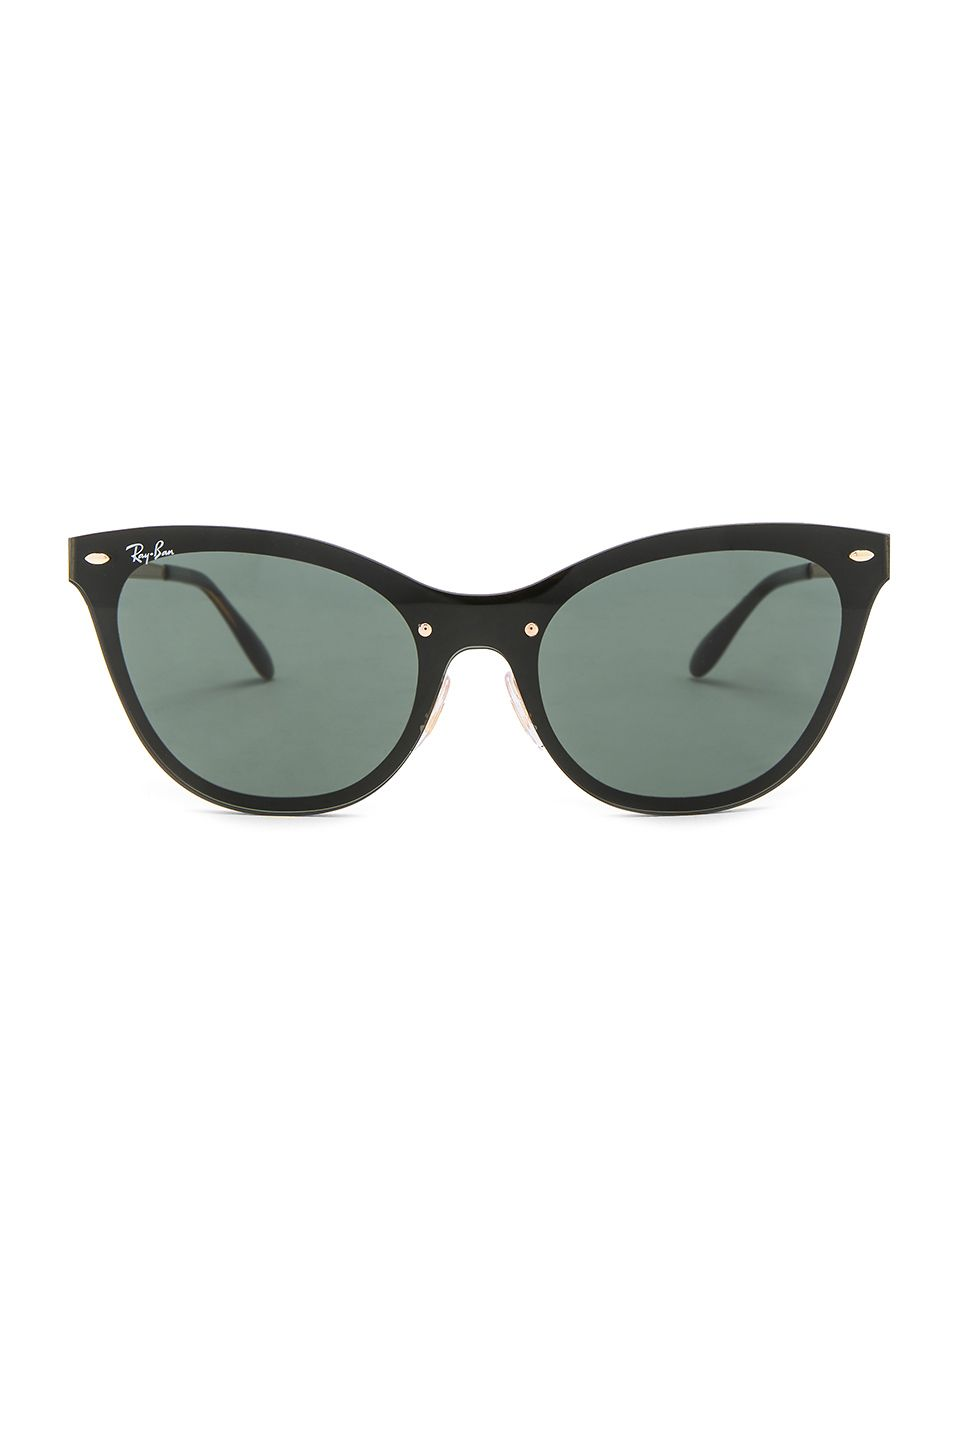 5ffc62bb1c81d Ray-Ban Blaze Cats in Gold   Green Classic